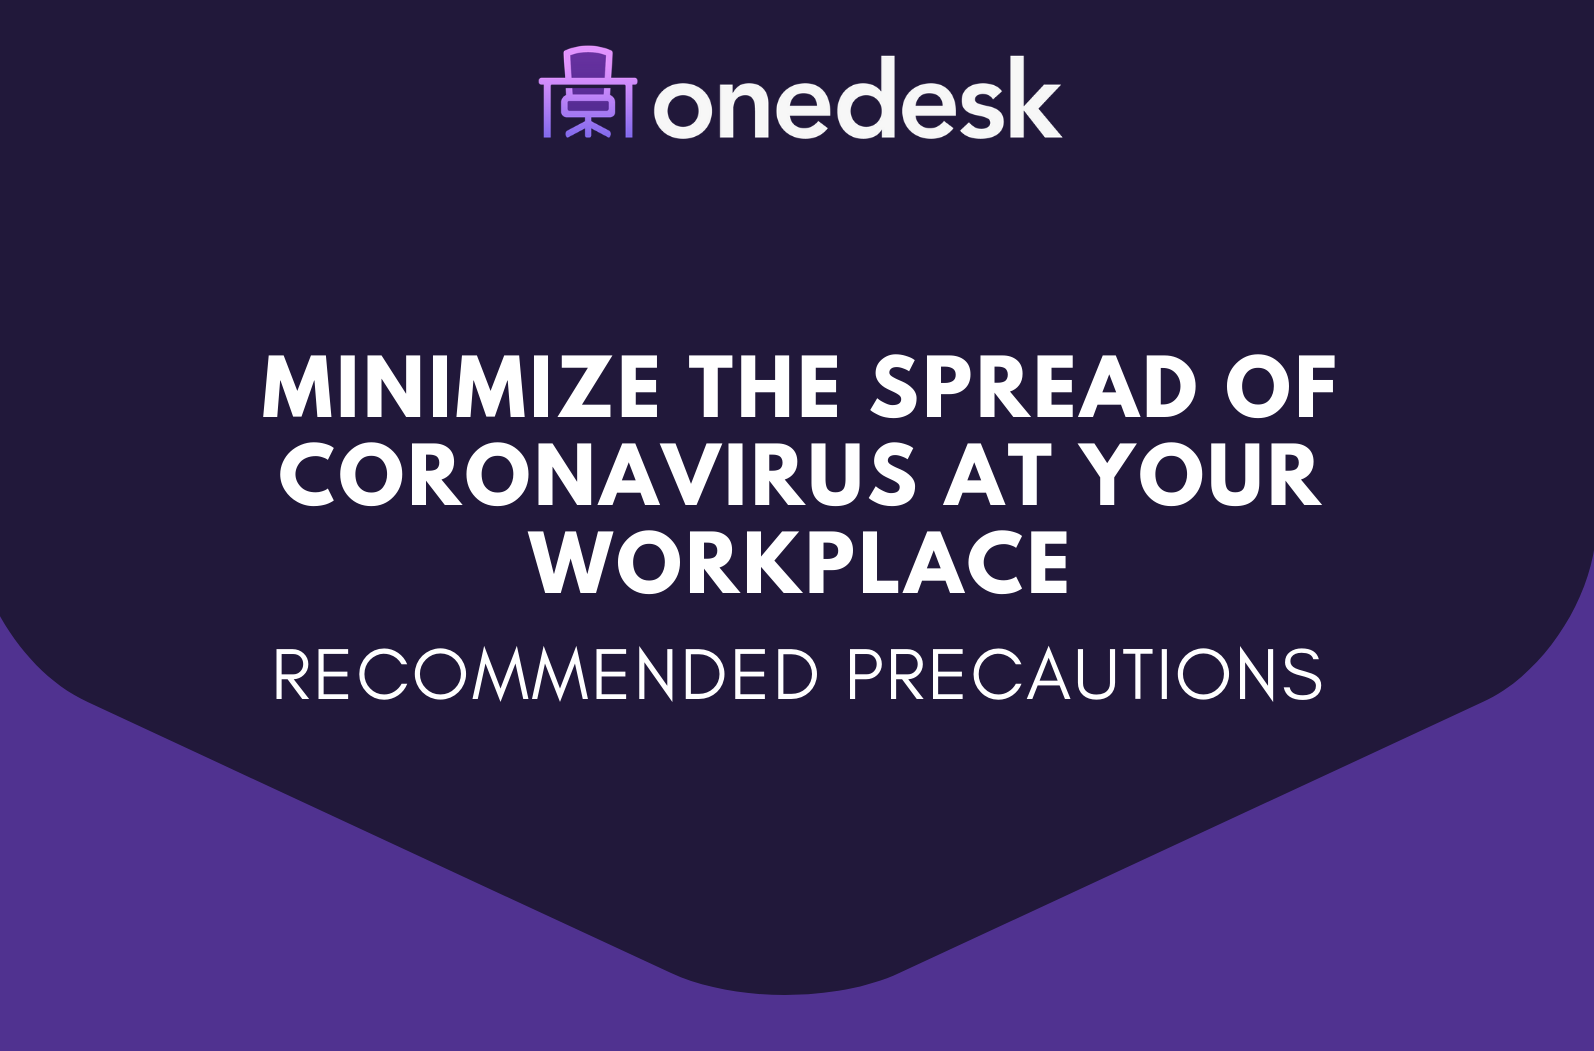 The Ultimate Guide To Minimizing The Spread Of Coronavirus At Your Workplace